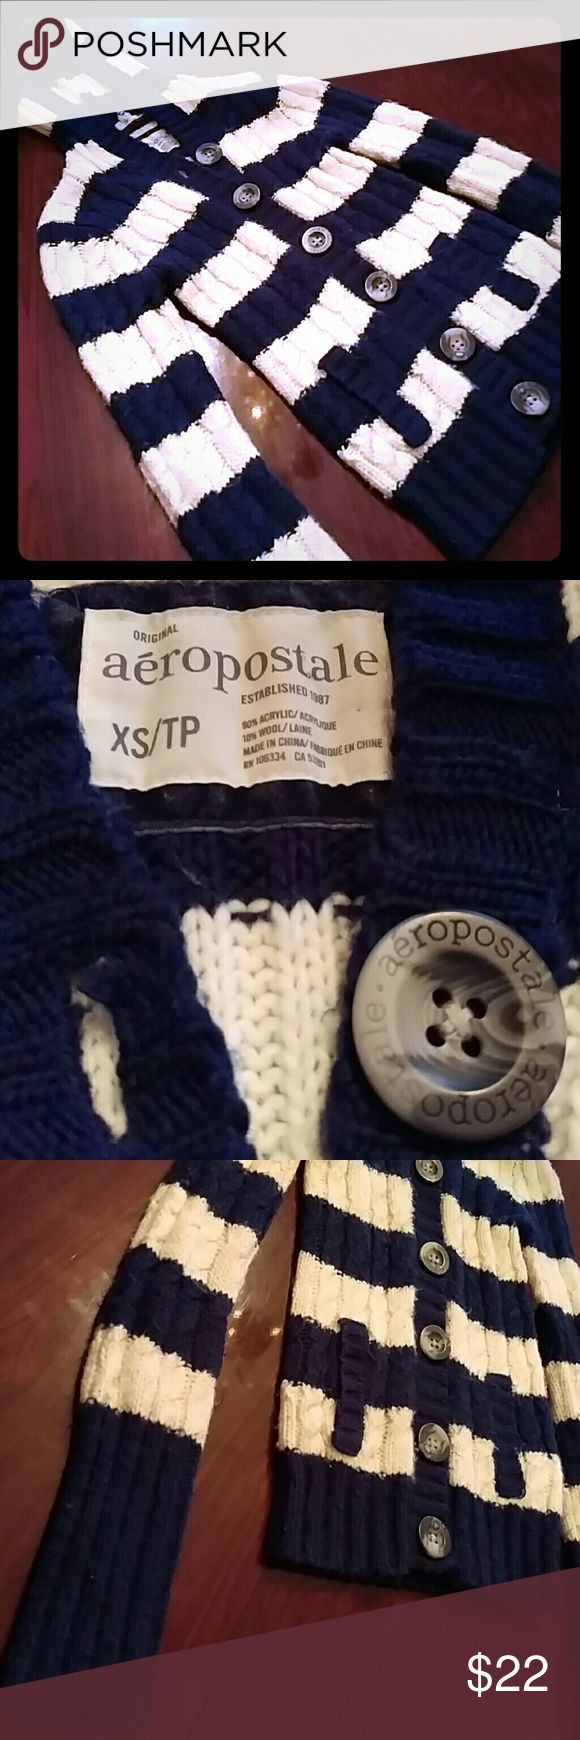 ✨FREE SHIPPING✨Aeropostale cable knit hoodie Free shipping until 6:45 PM EST ..... Women's navy blue and white XS Aeropostale cable knit hoodie Aeropostale Sweaters